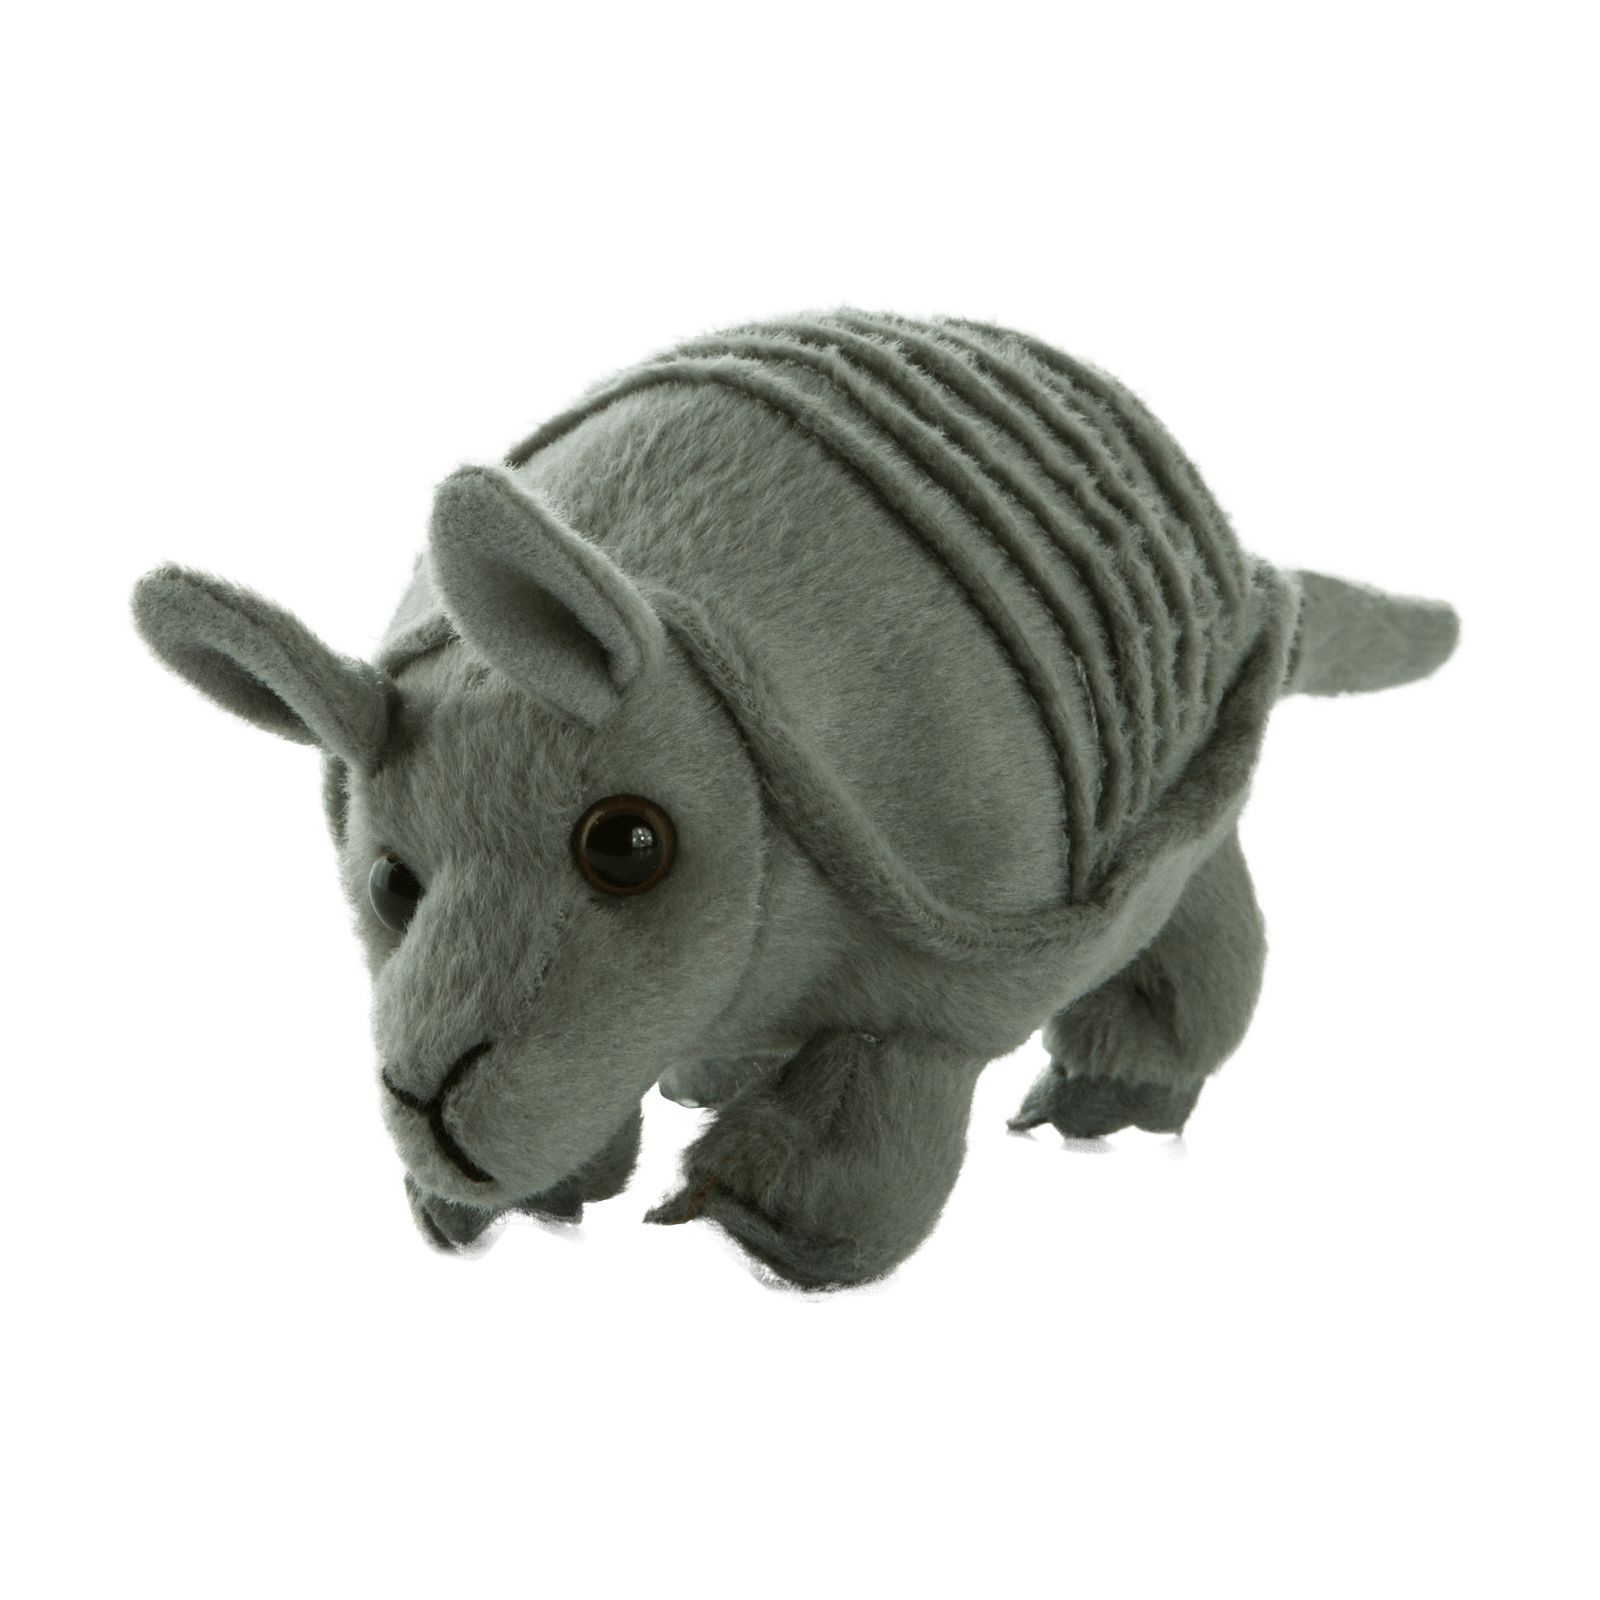 Armadillo Plush Toy